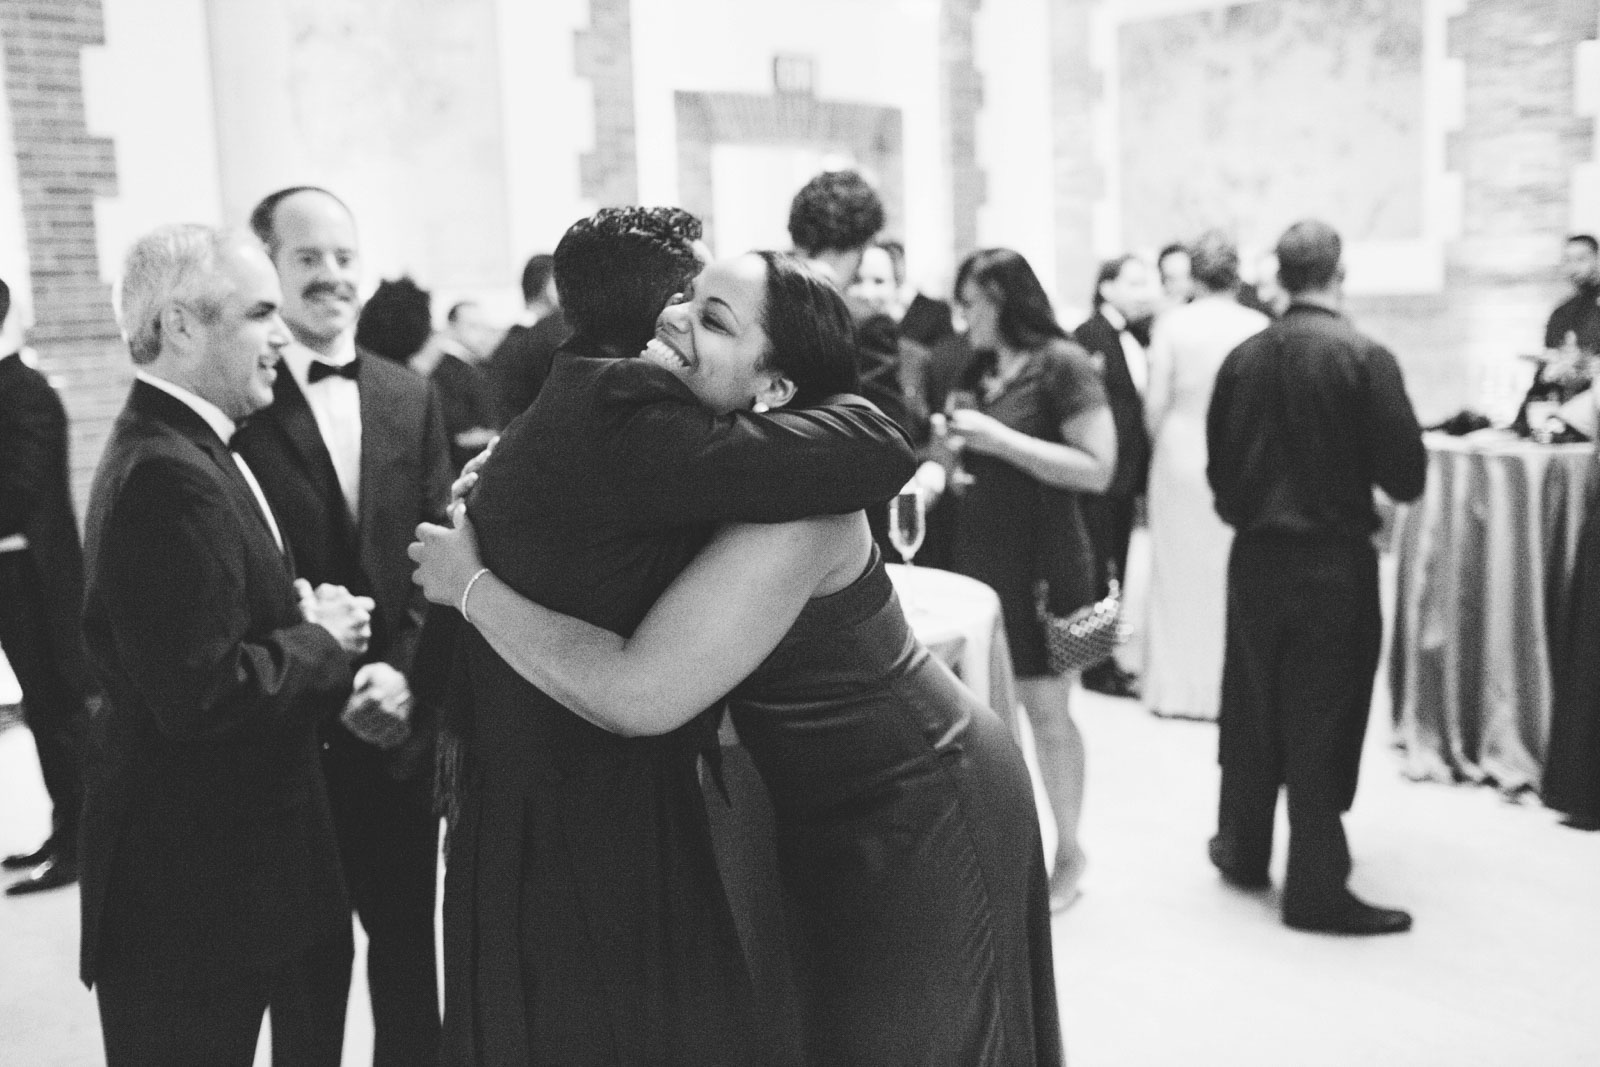 Black and white candid shot of groom hugging wedding guest a cocktail hour at Boston Public Library